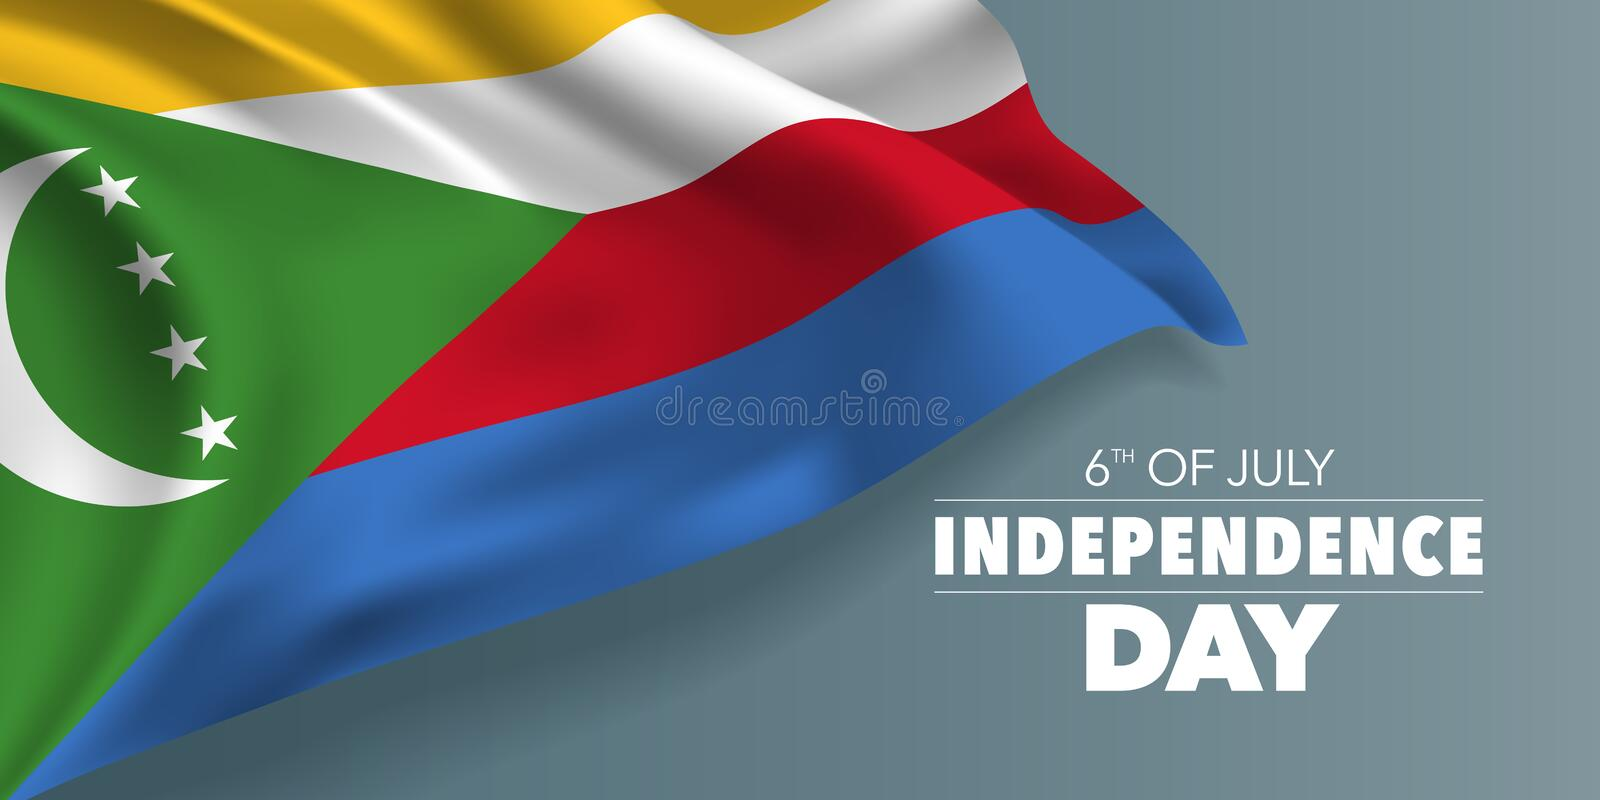 Comoros happy independence day greeting card, banner with template text vector illustration. Comorian memorial holiday 6th of July design element with flag royalty free illustration